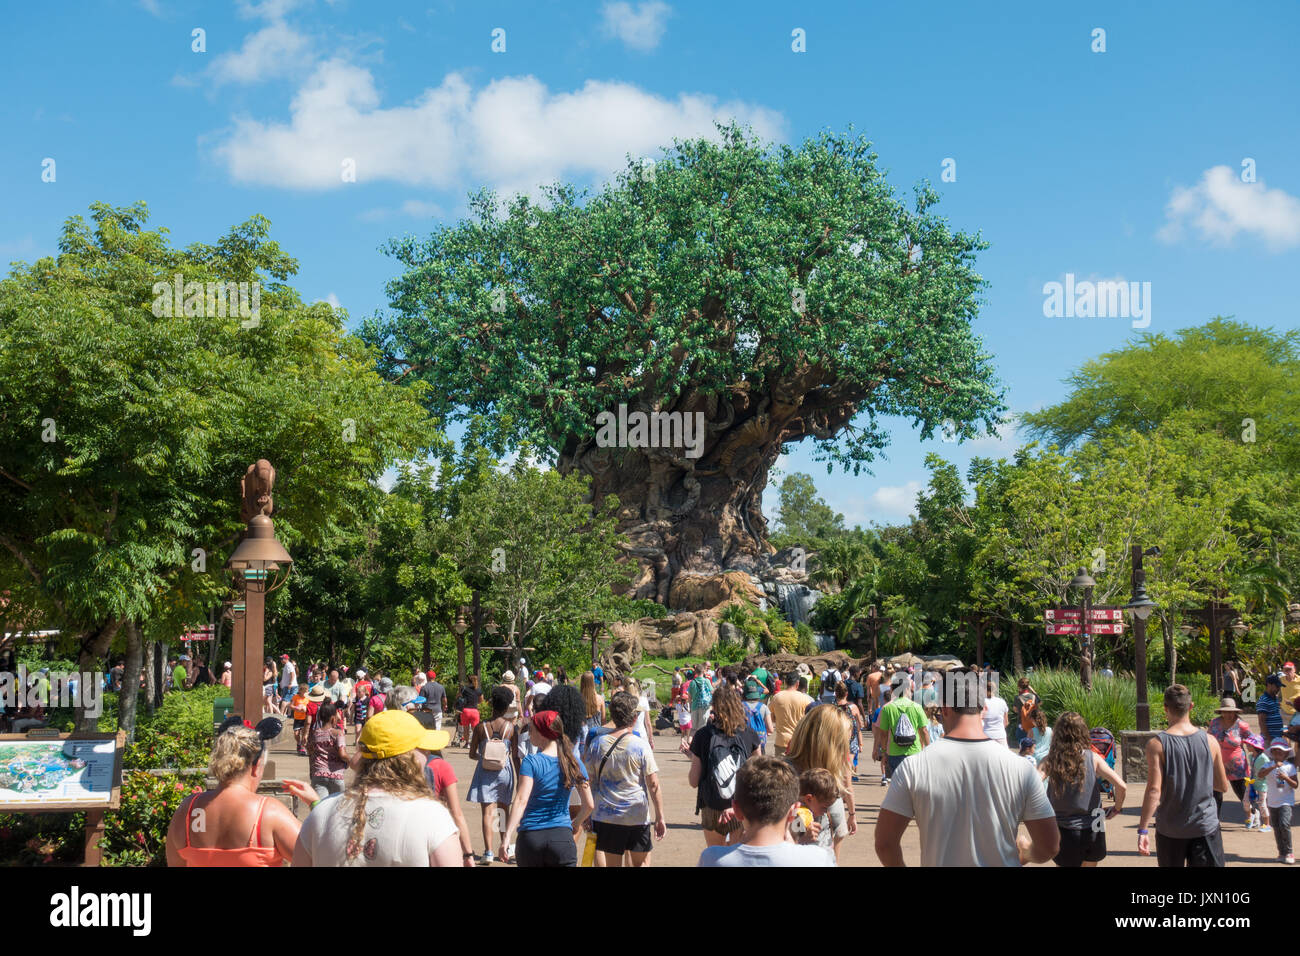 Tree of Life in Disneys Animal Kingdom Theme Park, Orlando, Florida. - Stock Image